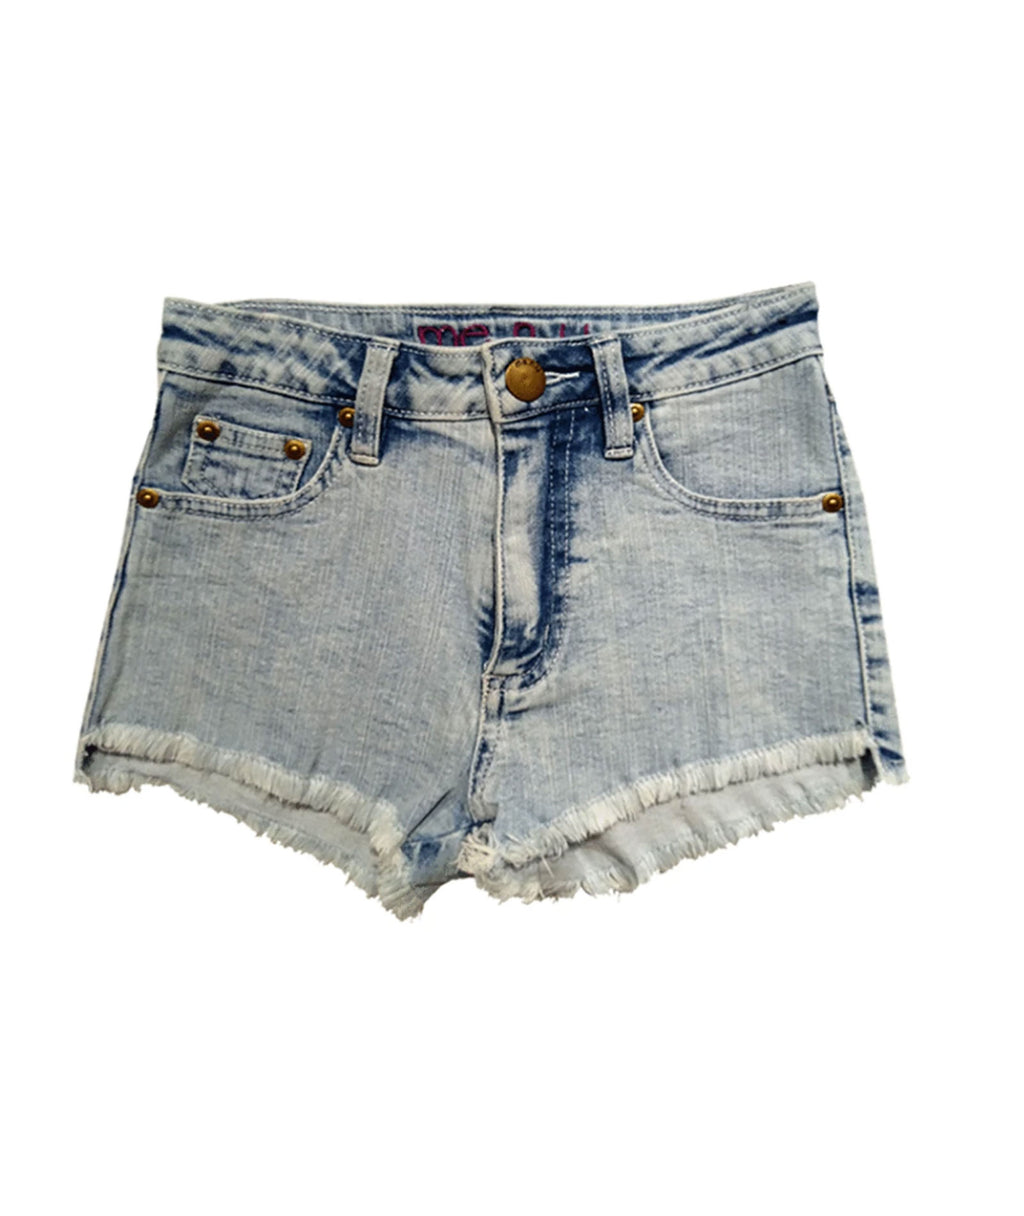 Me.n.u. Girls High-Waisted Denim Shorts